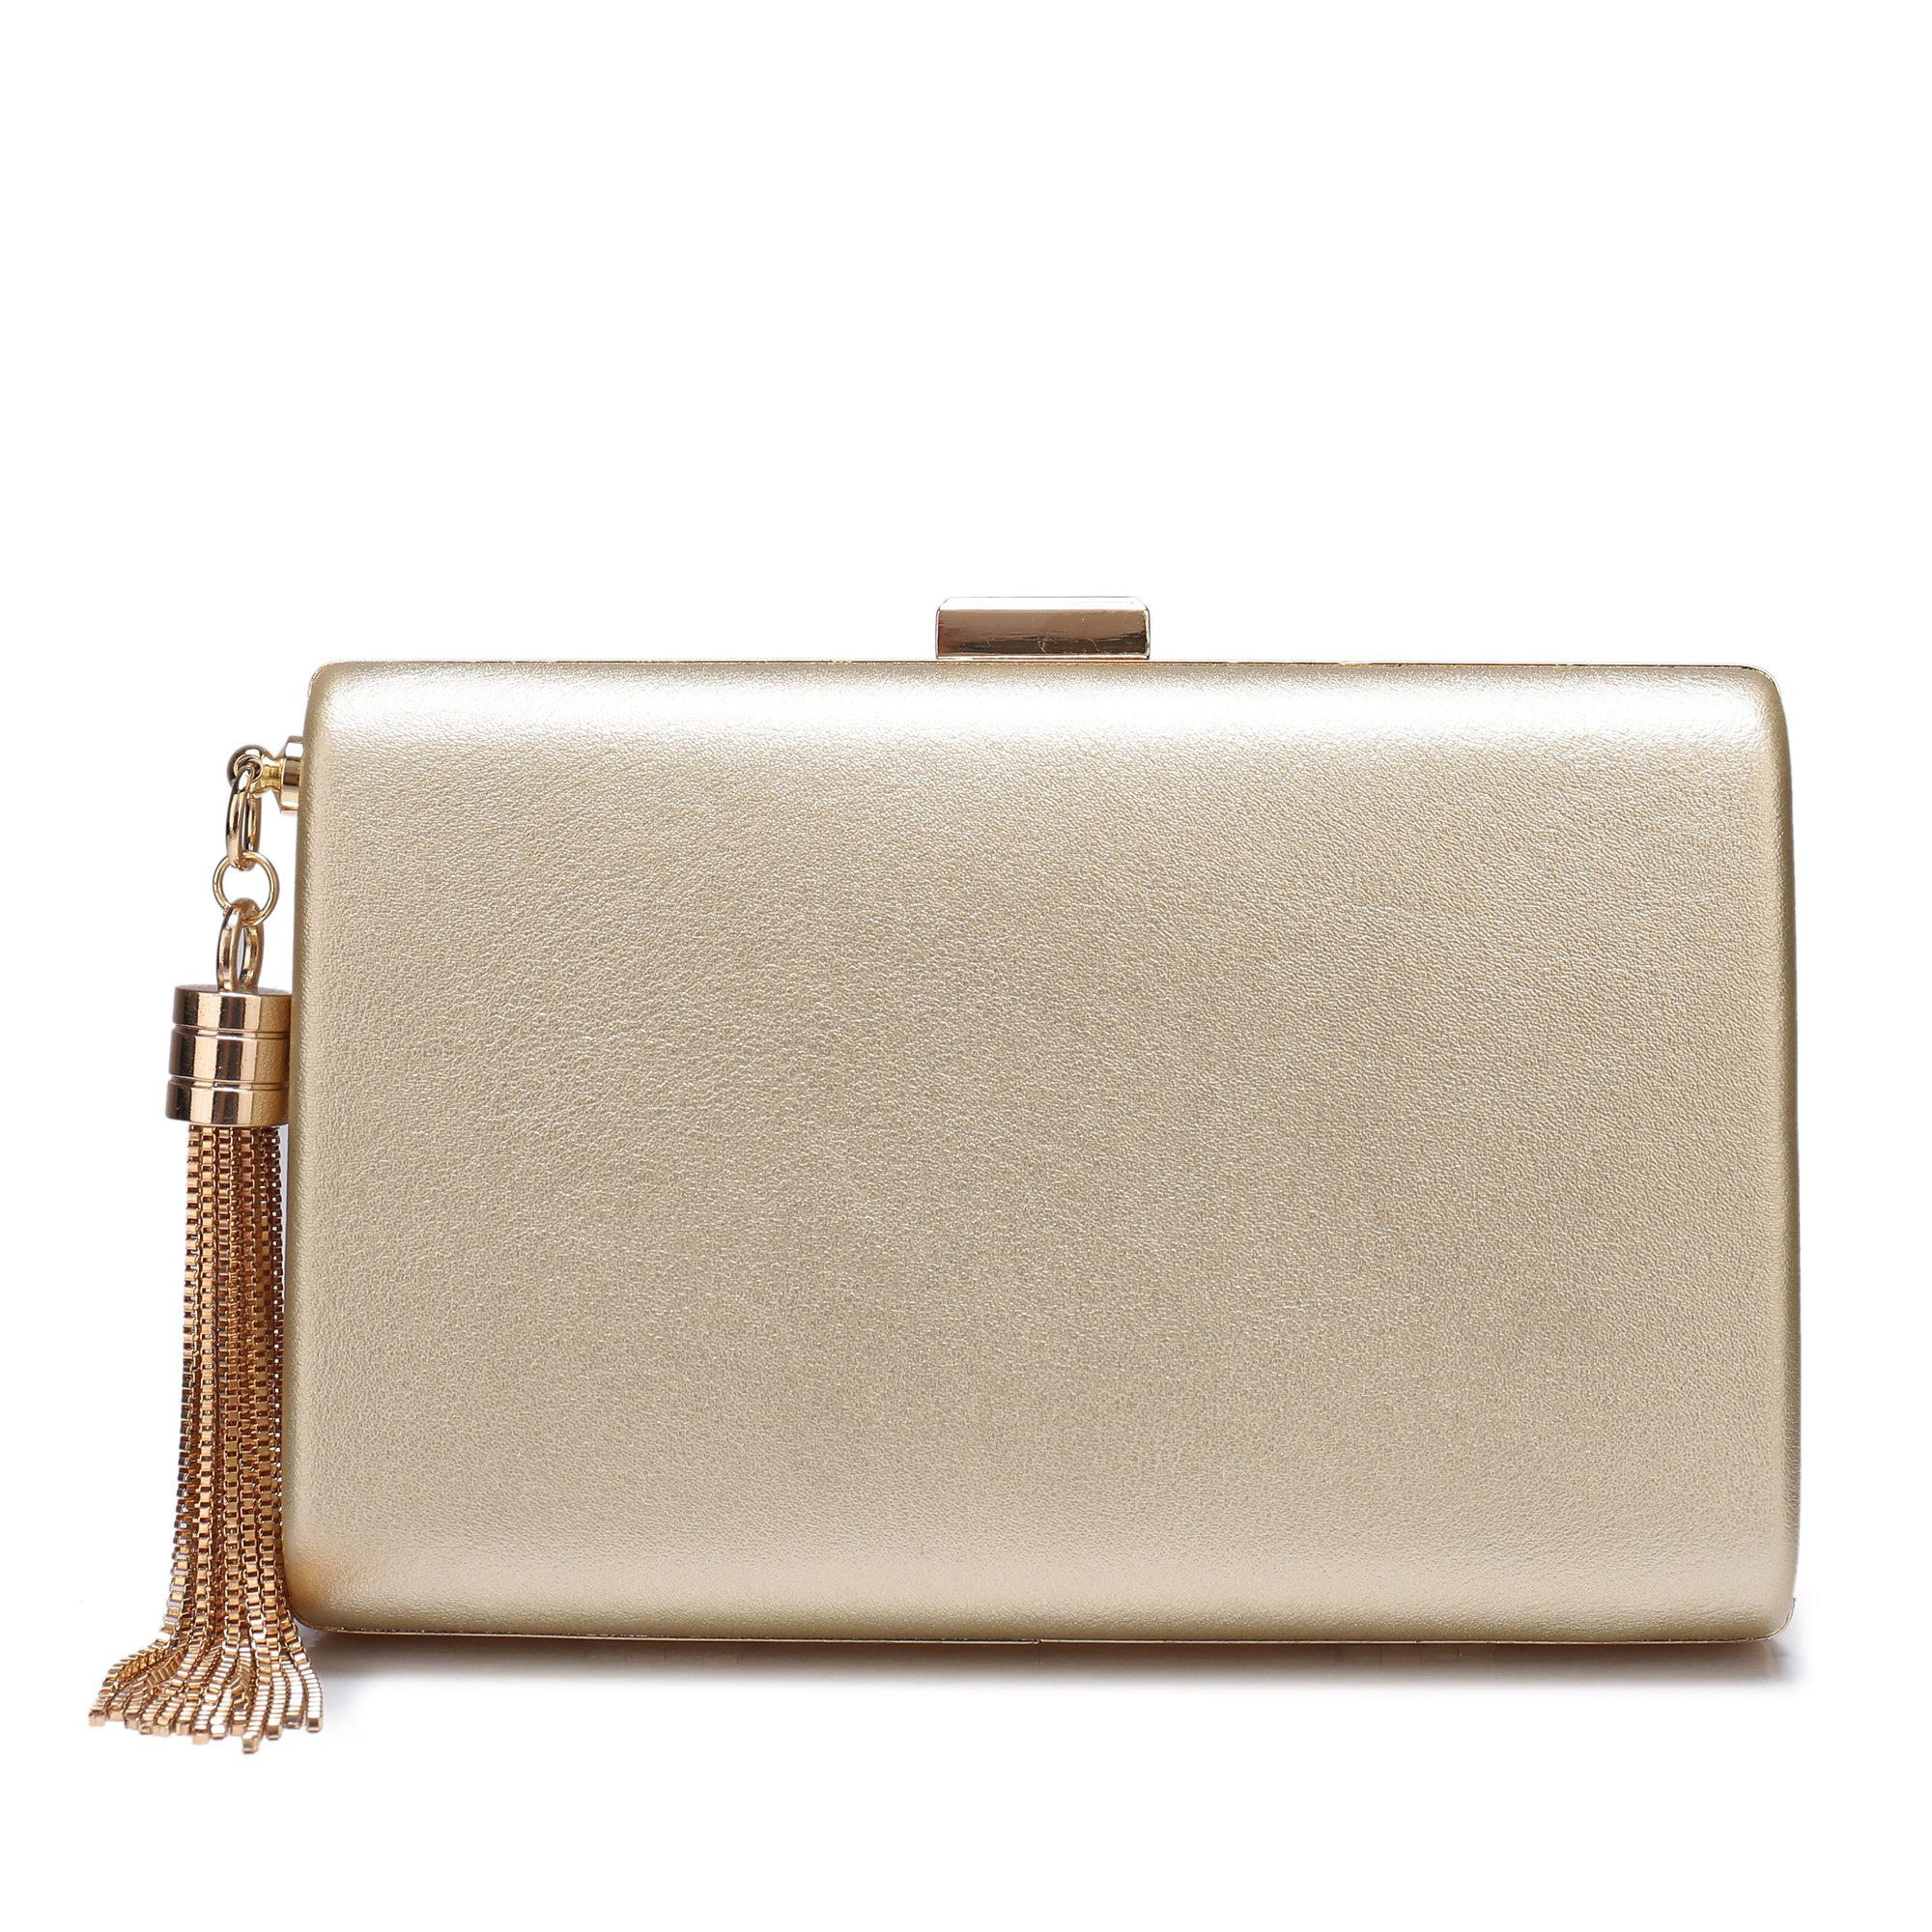 Leather Evening Clutch Handbag Clutch Purse Prom For Cocktail Wedding Women Gold